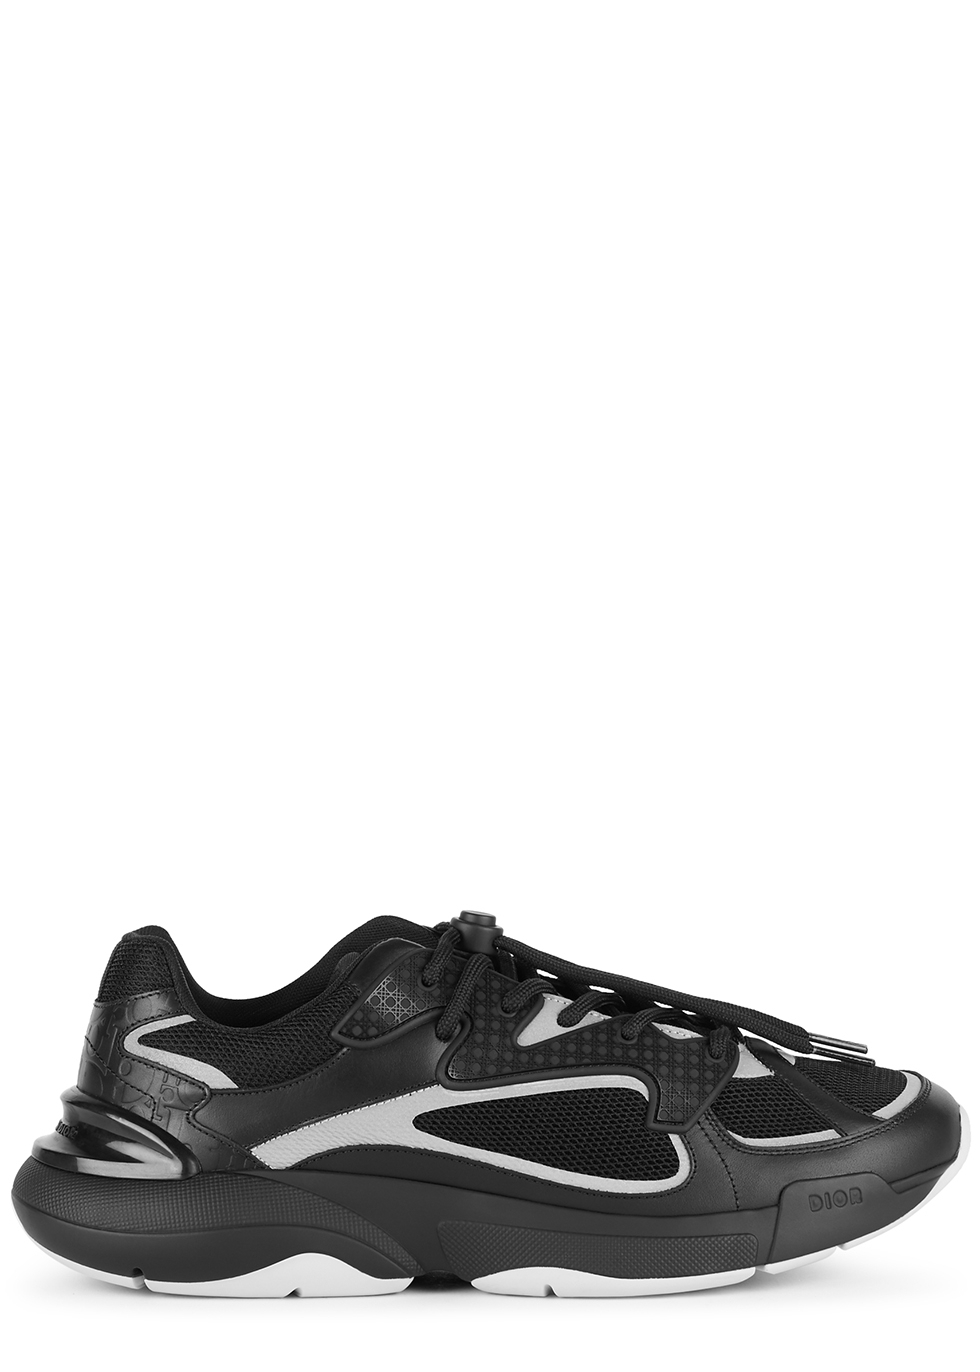 competitive price 11248 effbb Men s Designer Trainers, Sneakers   Sports Shoes - Harvey Nichols